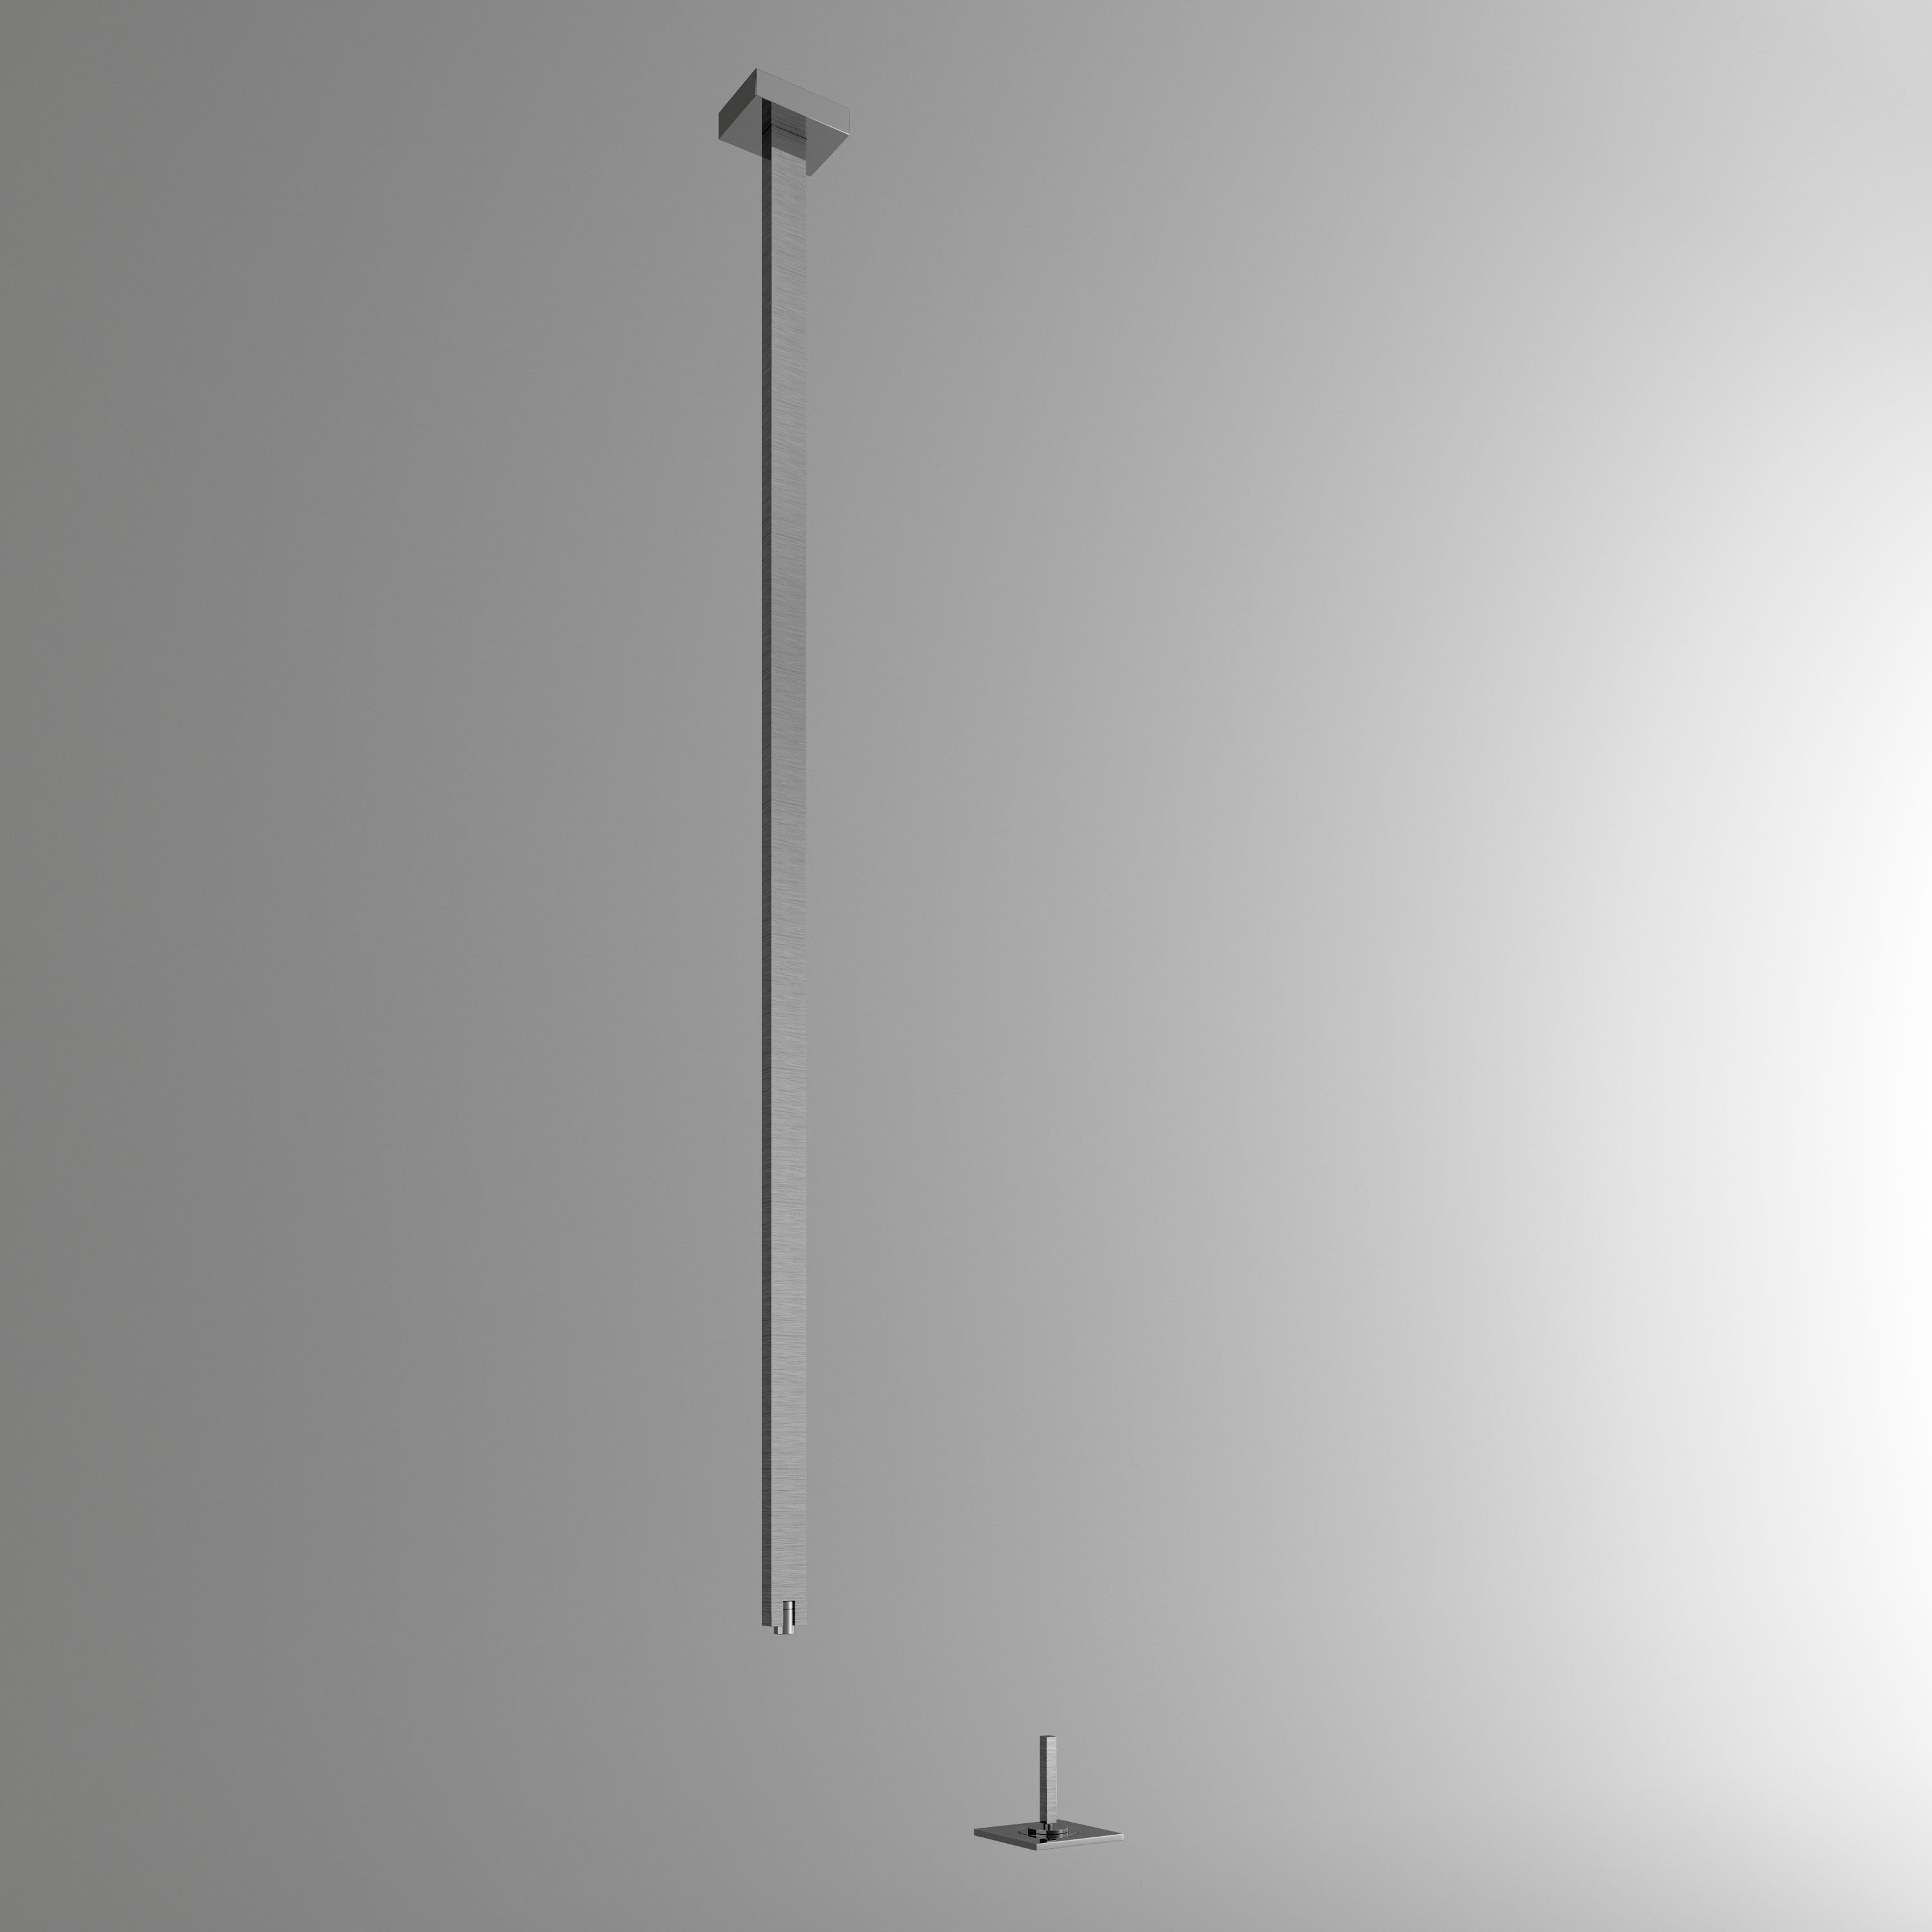 Gessi Rettangolo Ceiling Faucet 3D   CGTrader